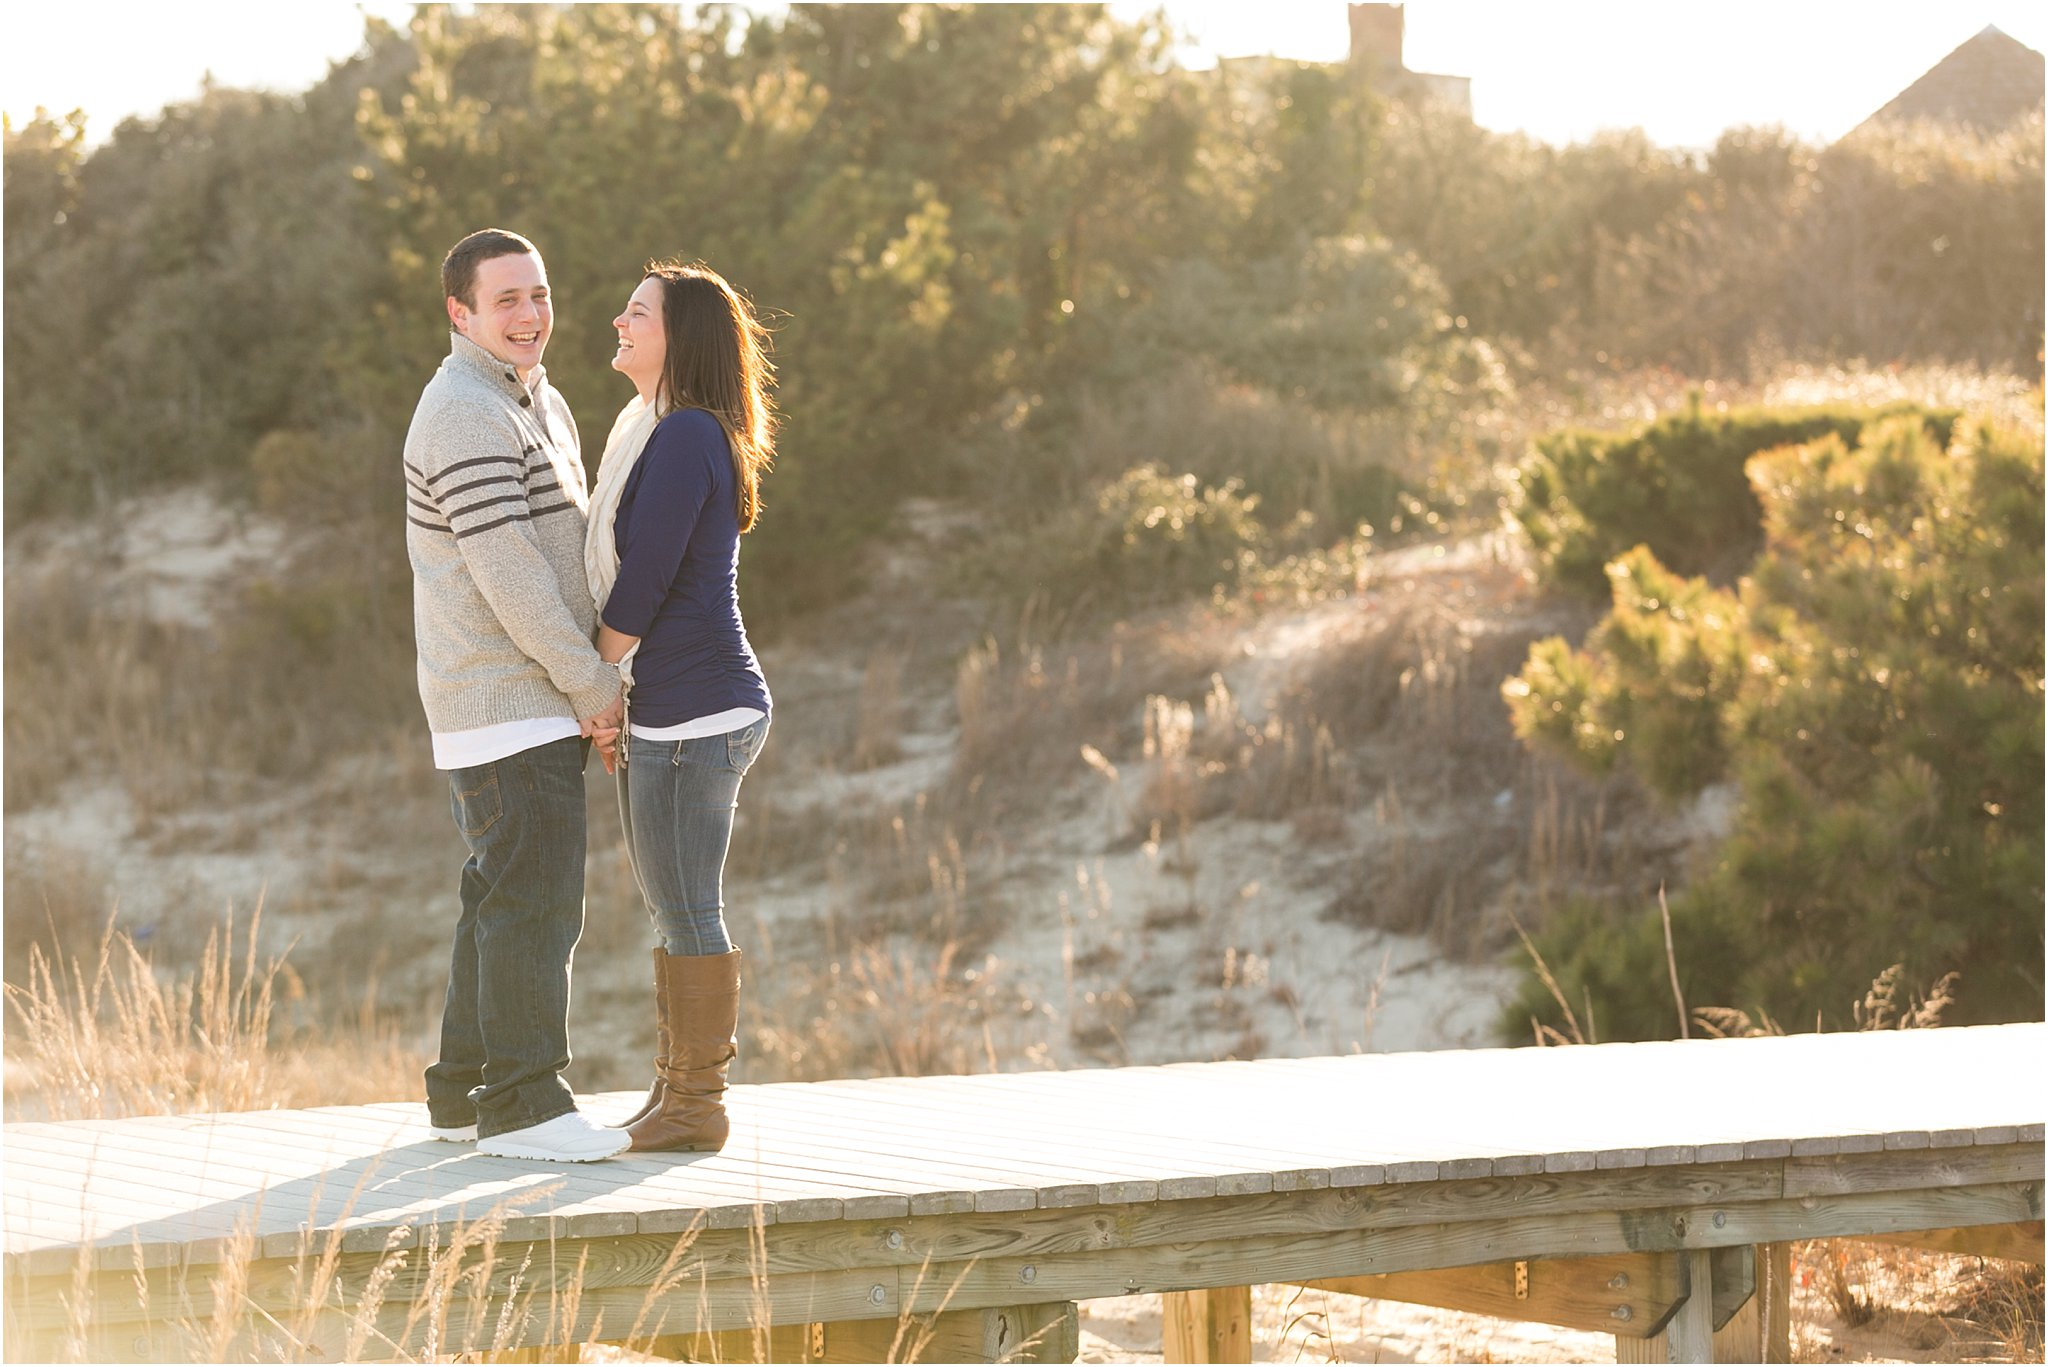 jessica_ryan_photography_winter_engagements_virginia_beach_oceanfront_virginia_0743